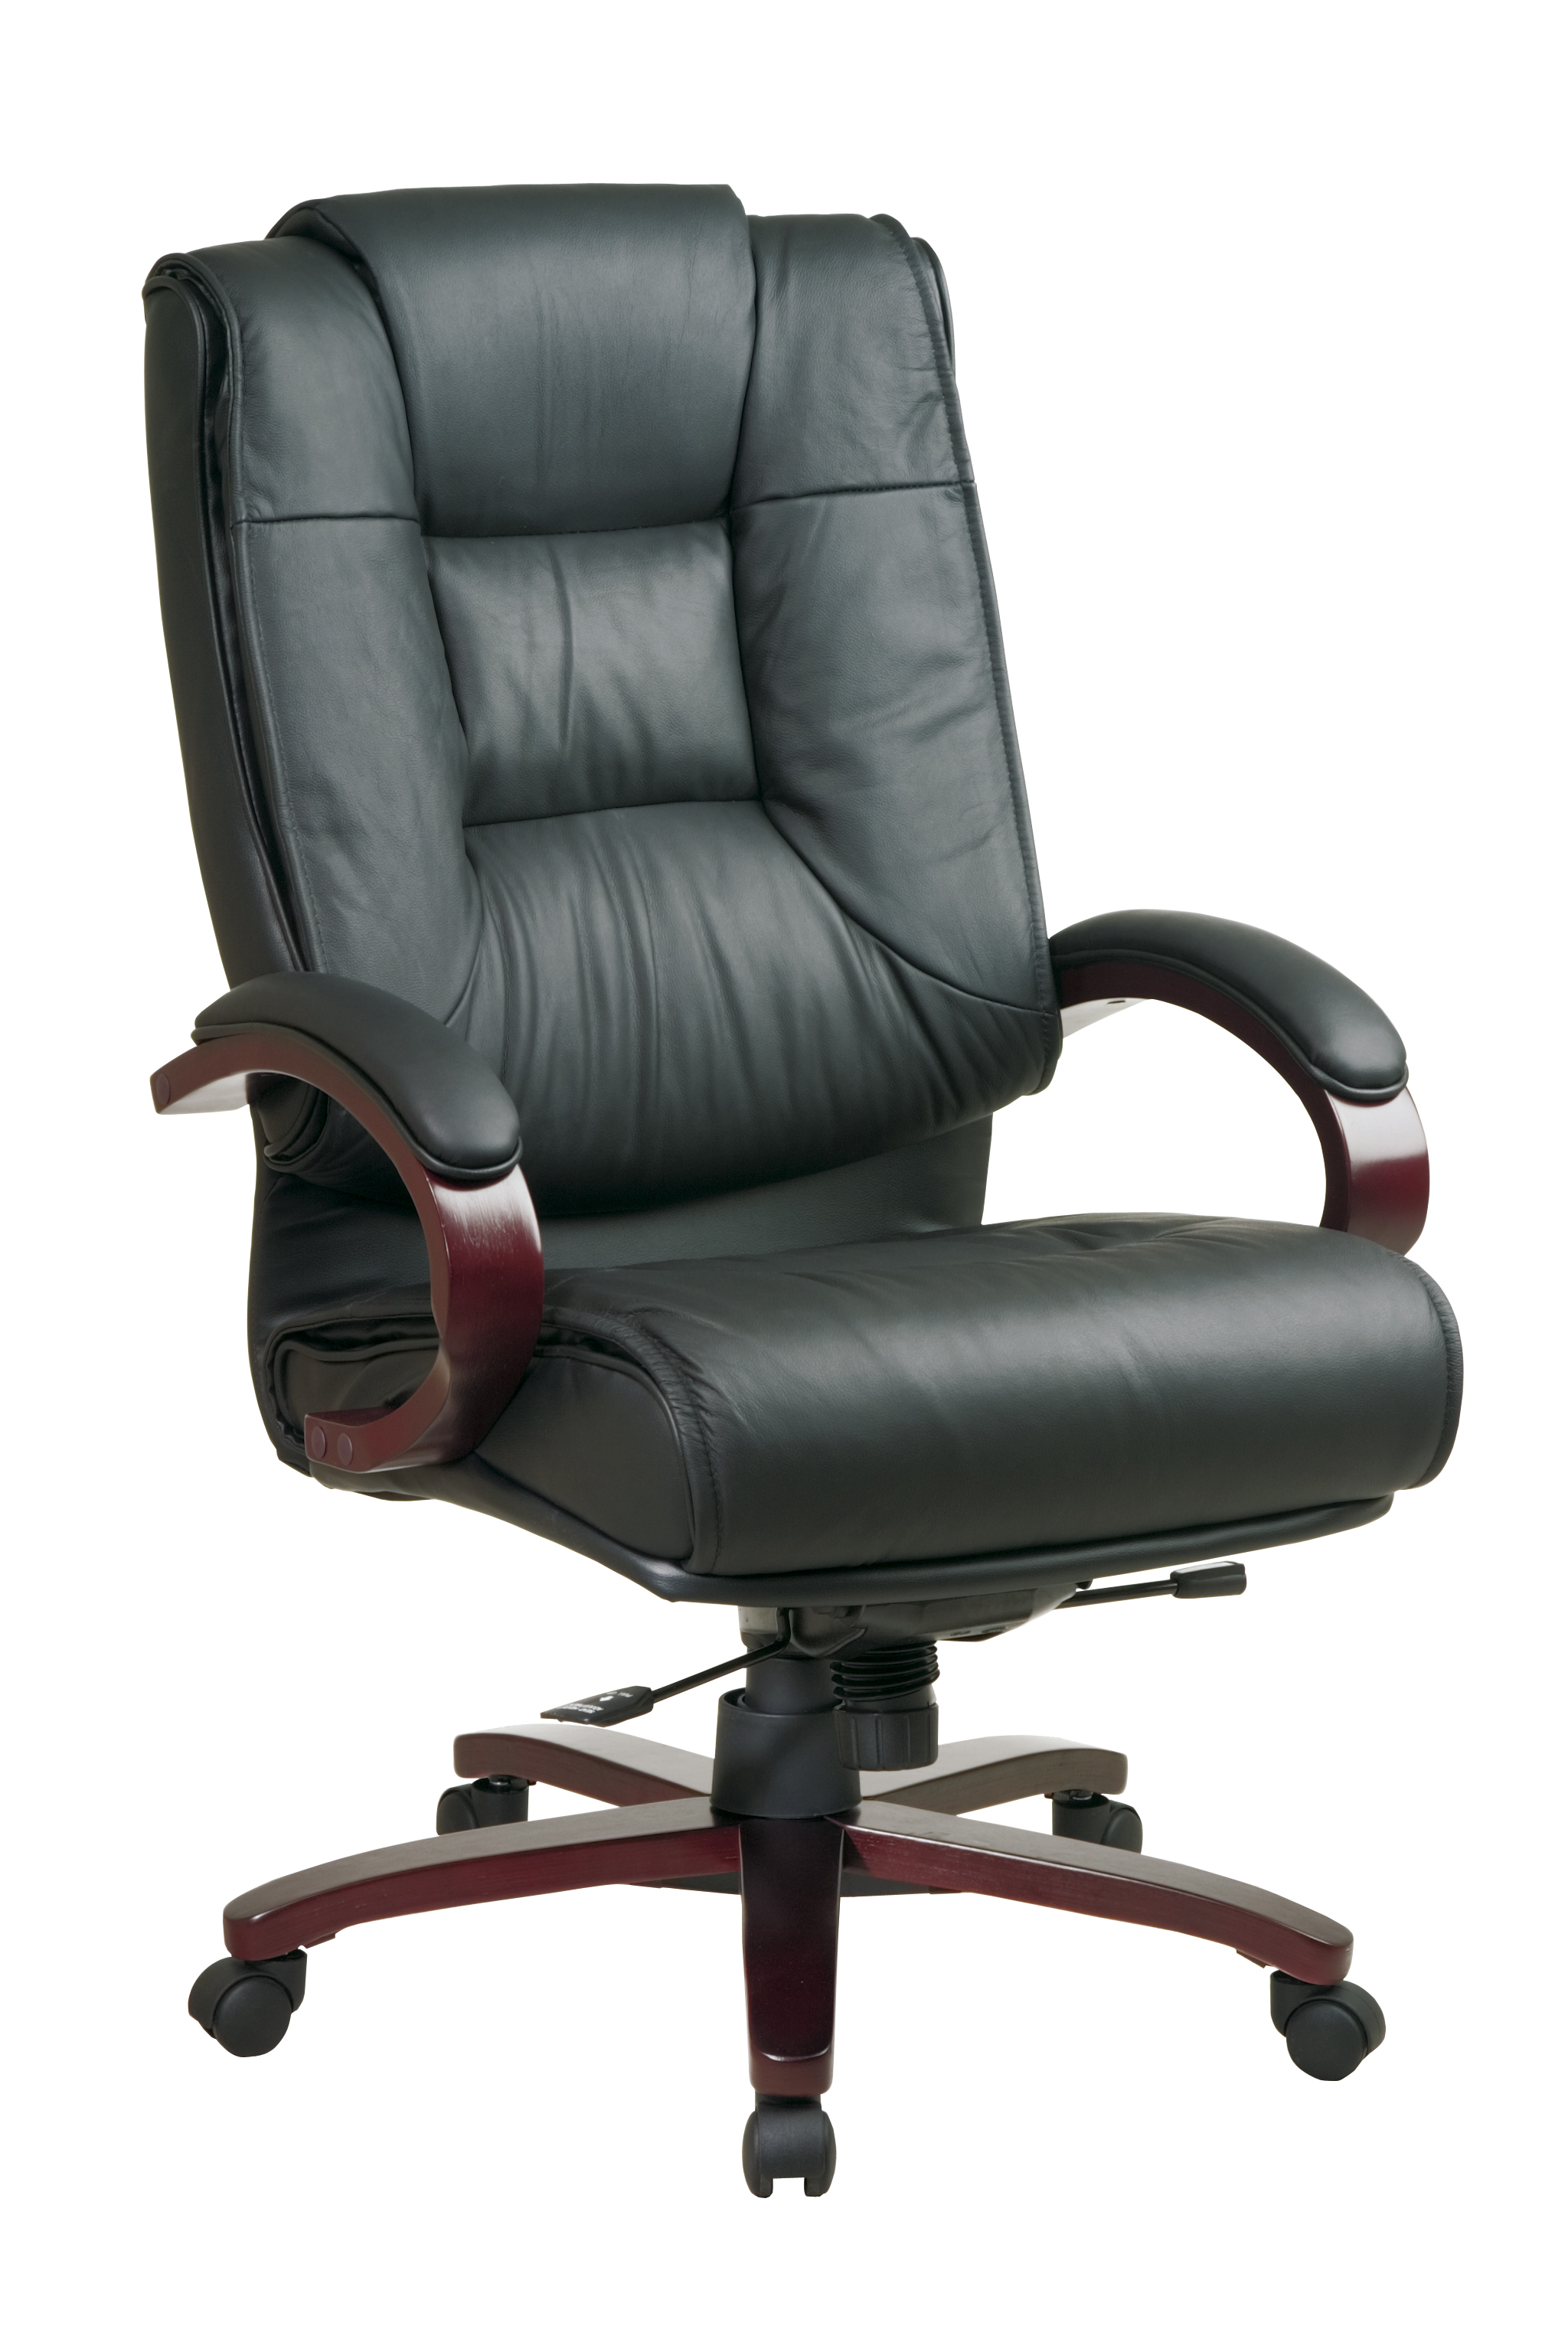 office star high back leather executive chair with mahogany finish by